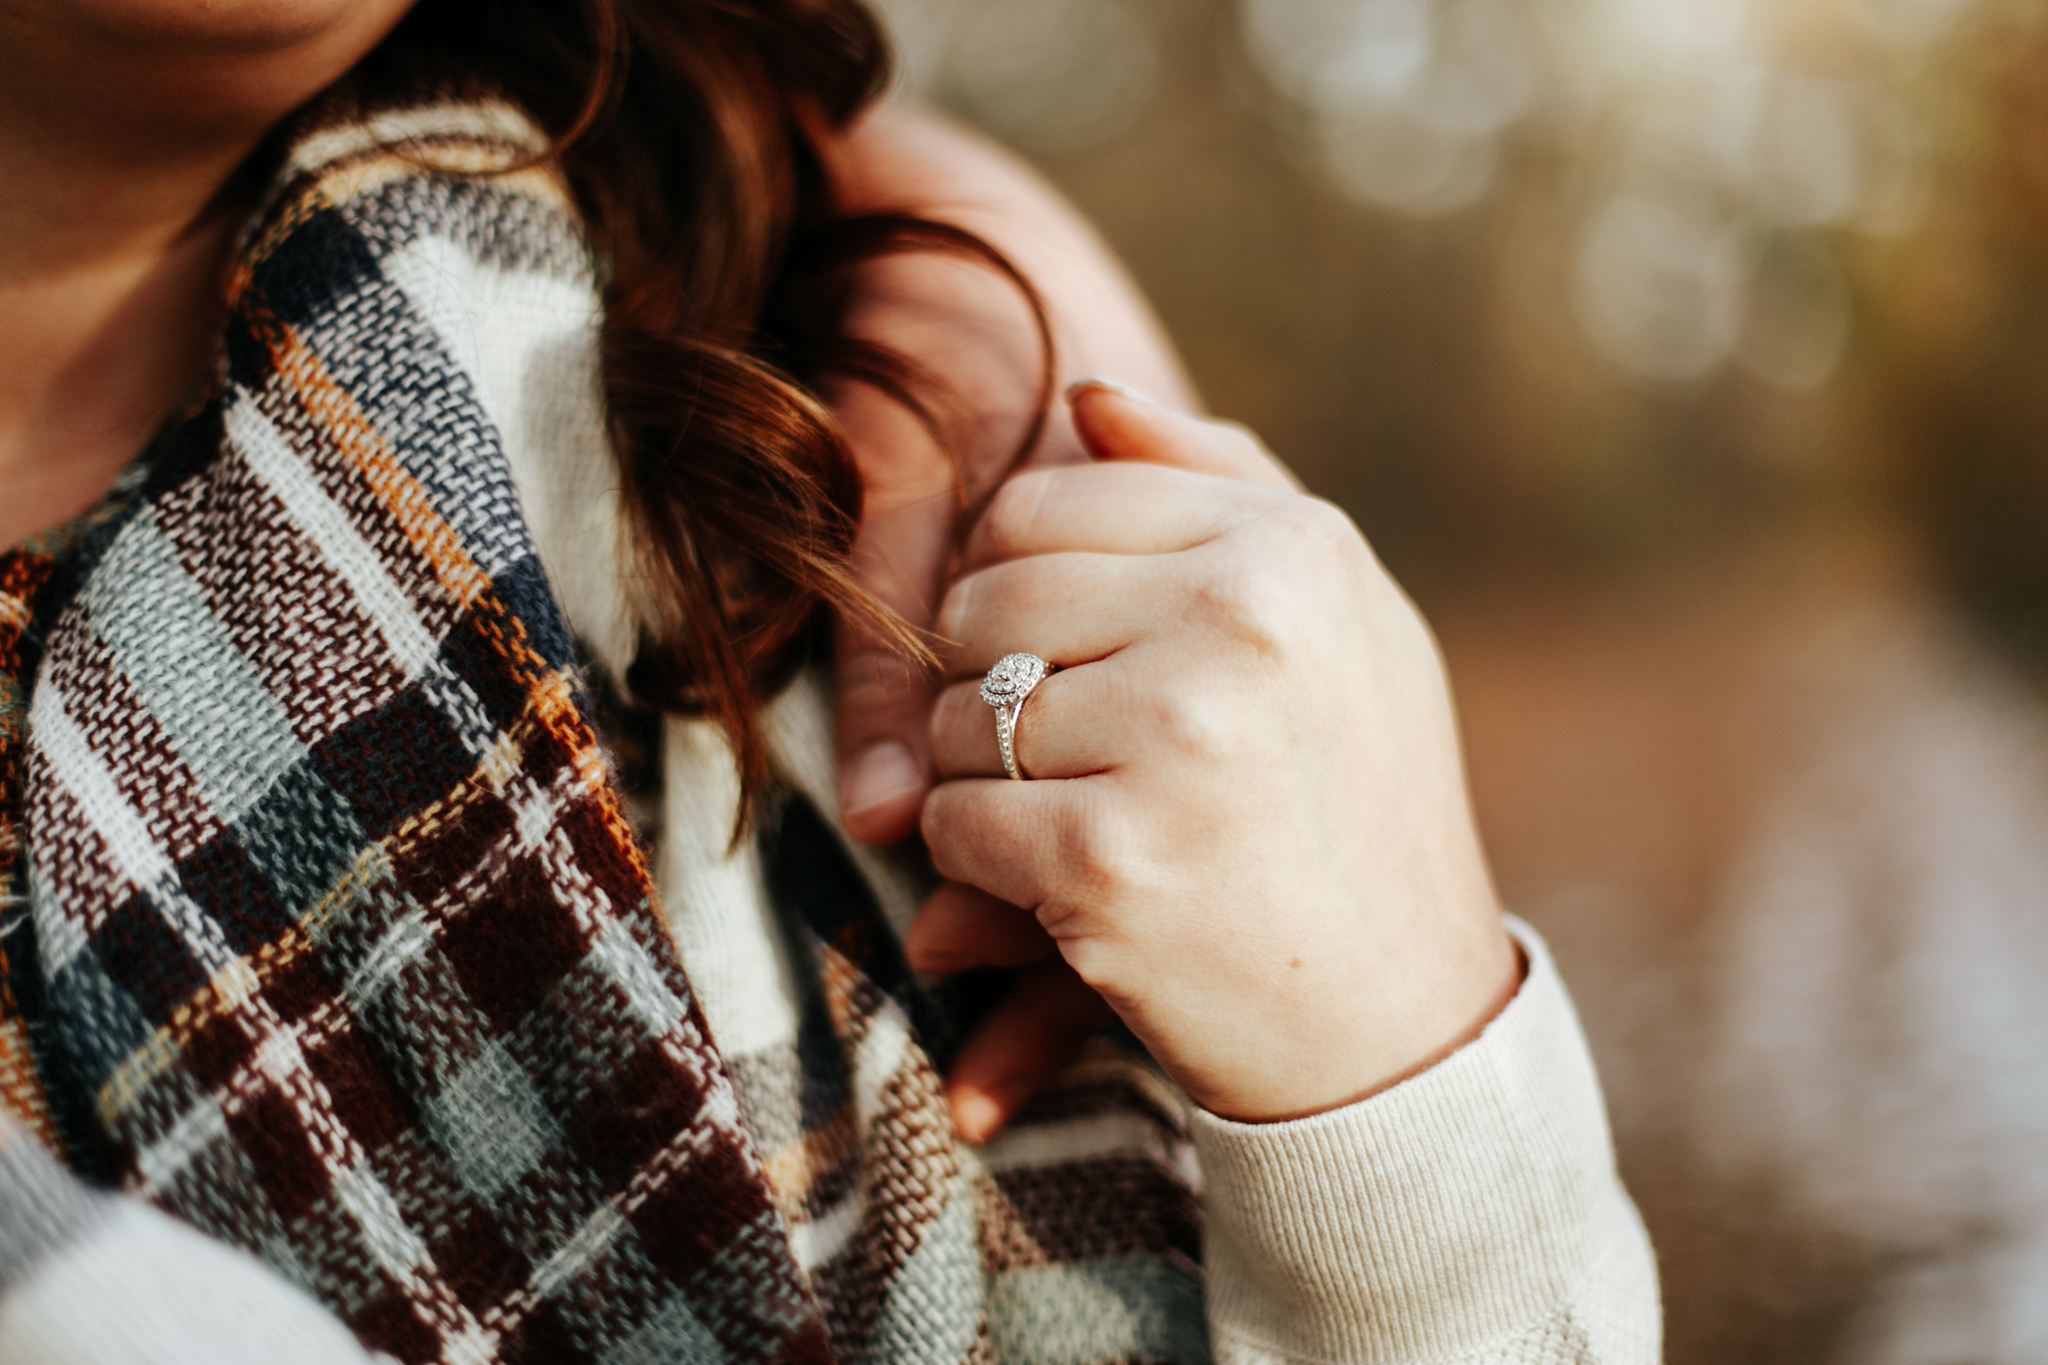 lethbridge-photographer-love-and-be-loved-photography-christy-bryan-fall-autumn-engagement-photo-image-picture-16.jpg